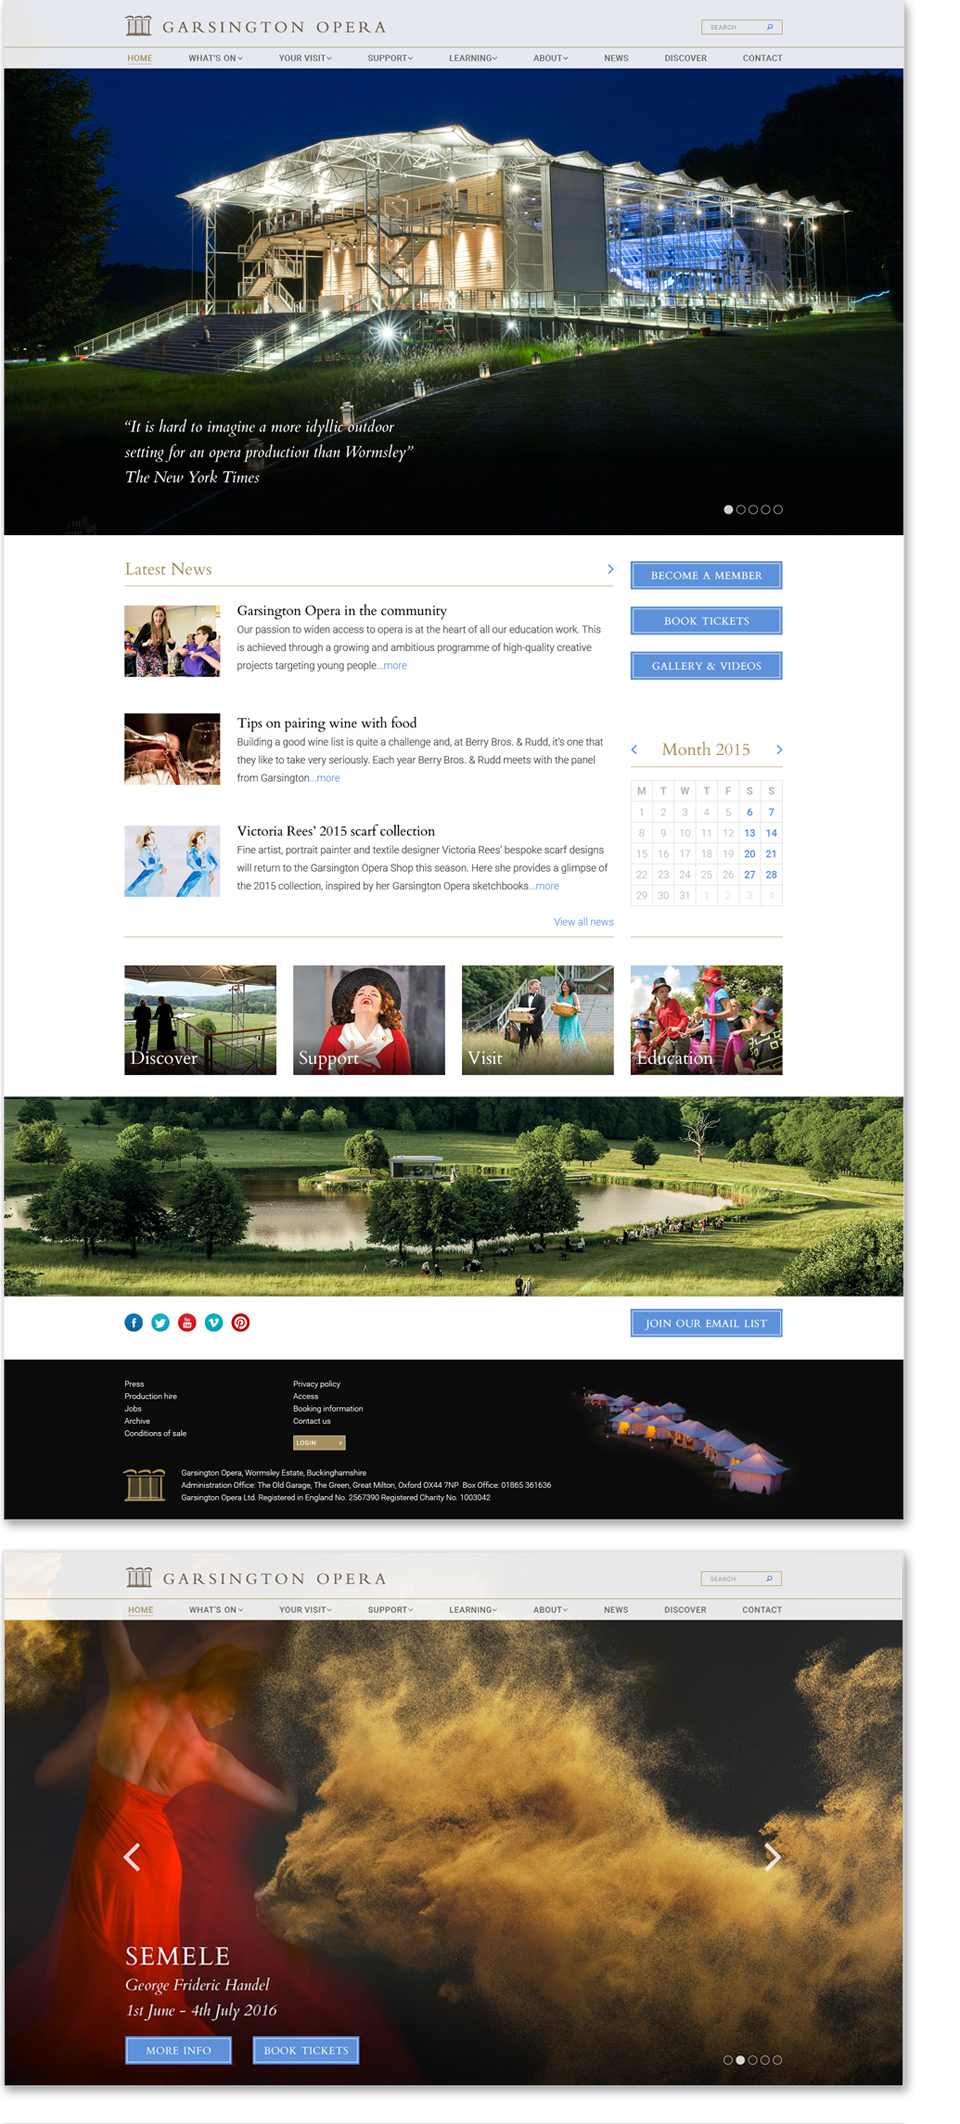 Garsington website design